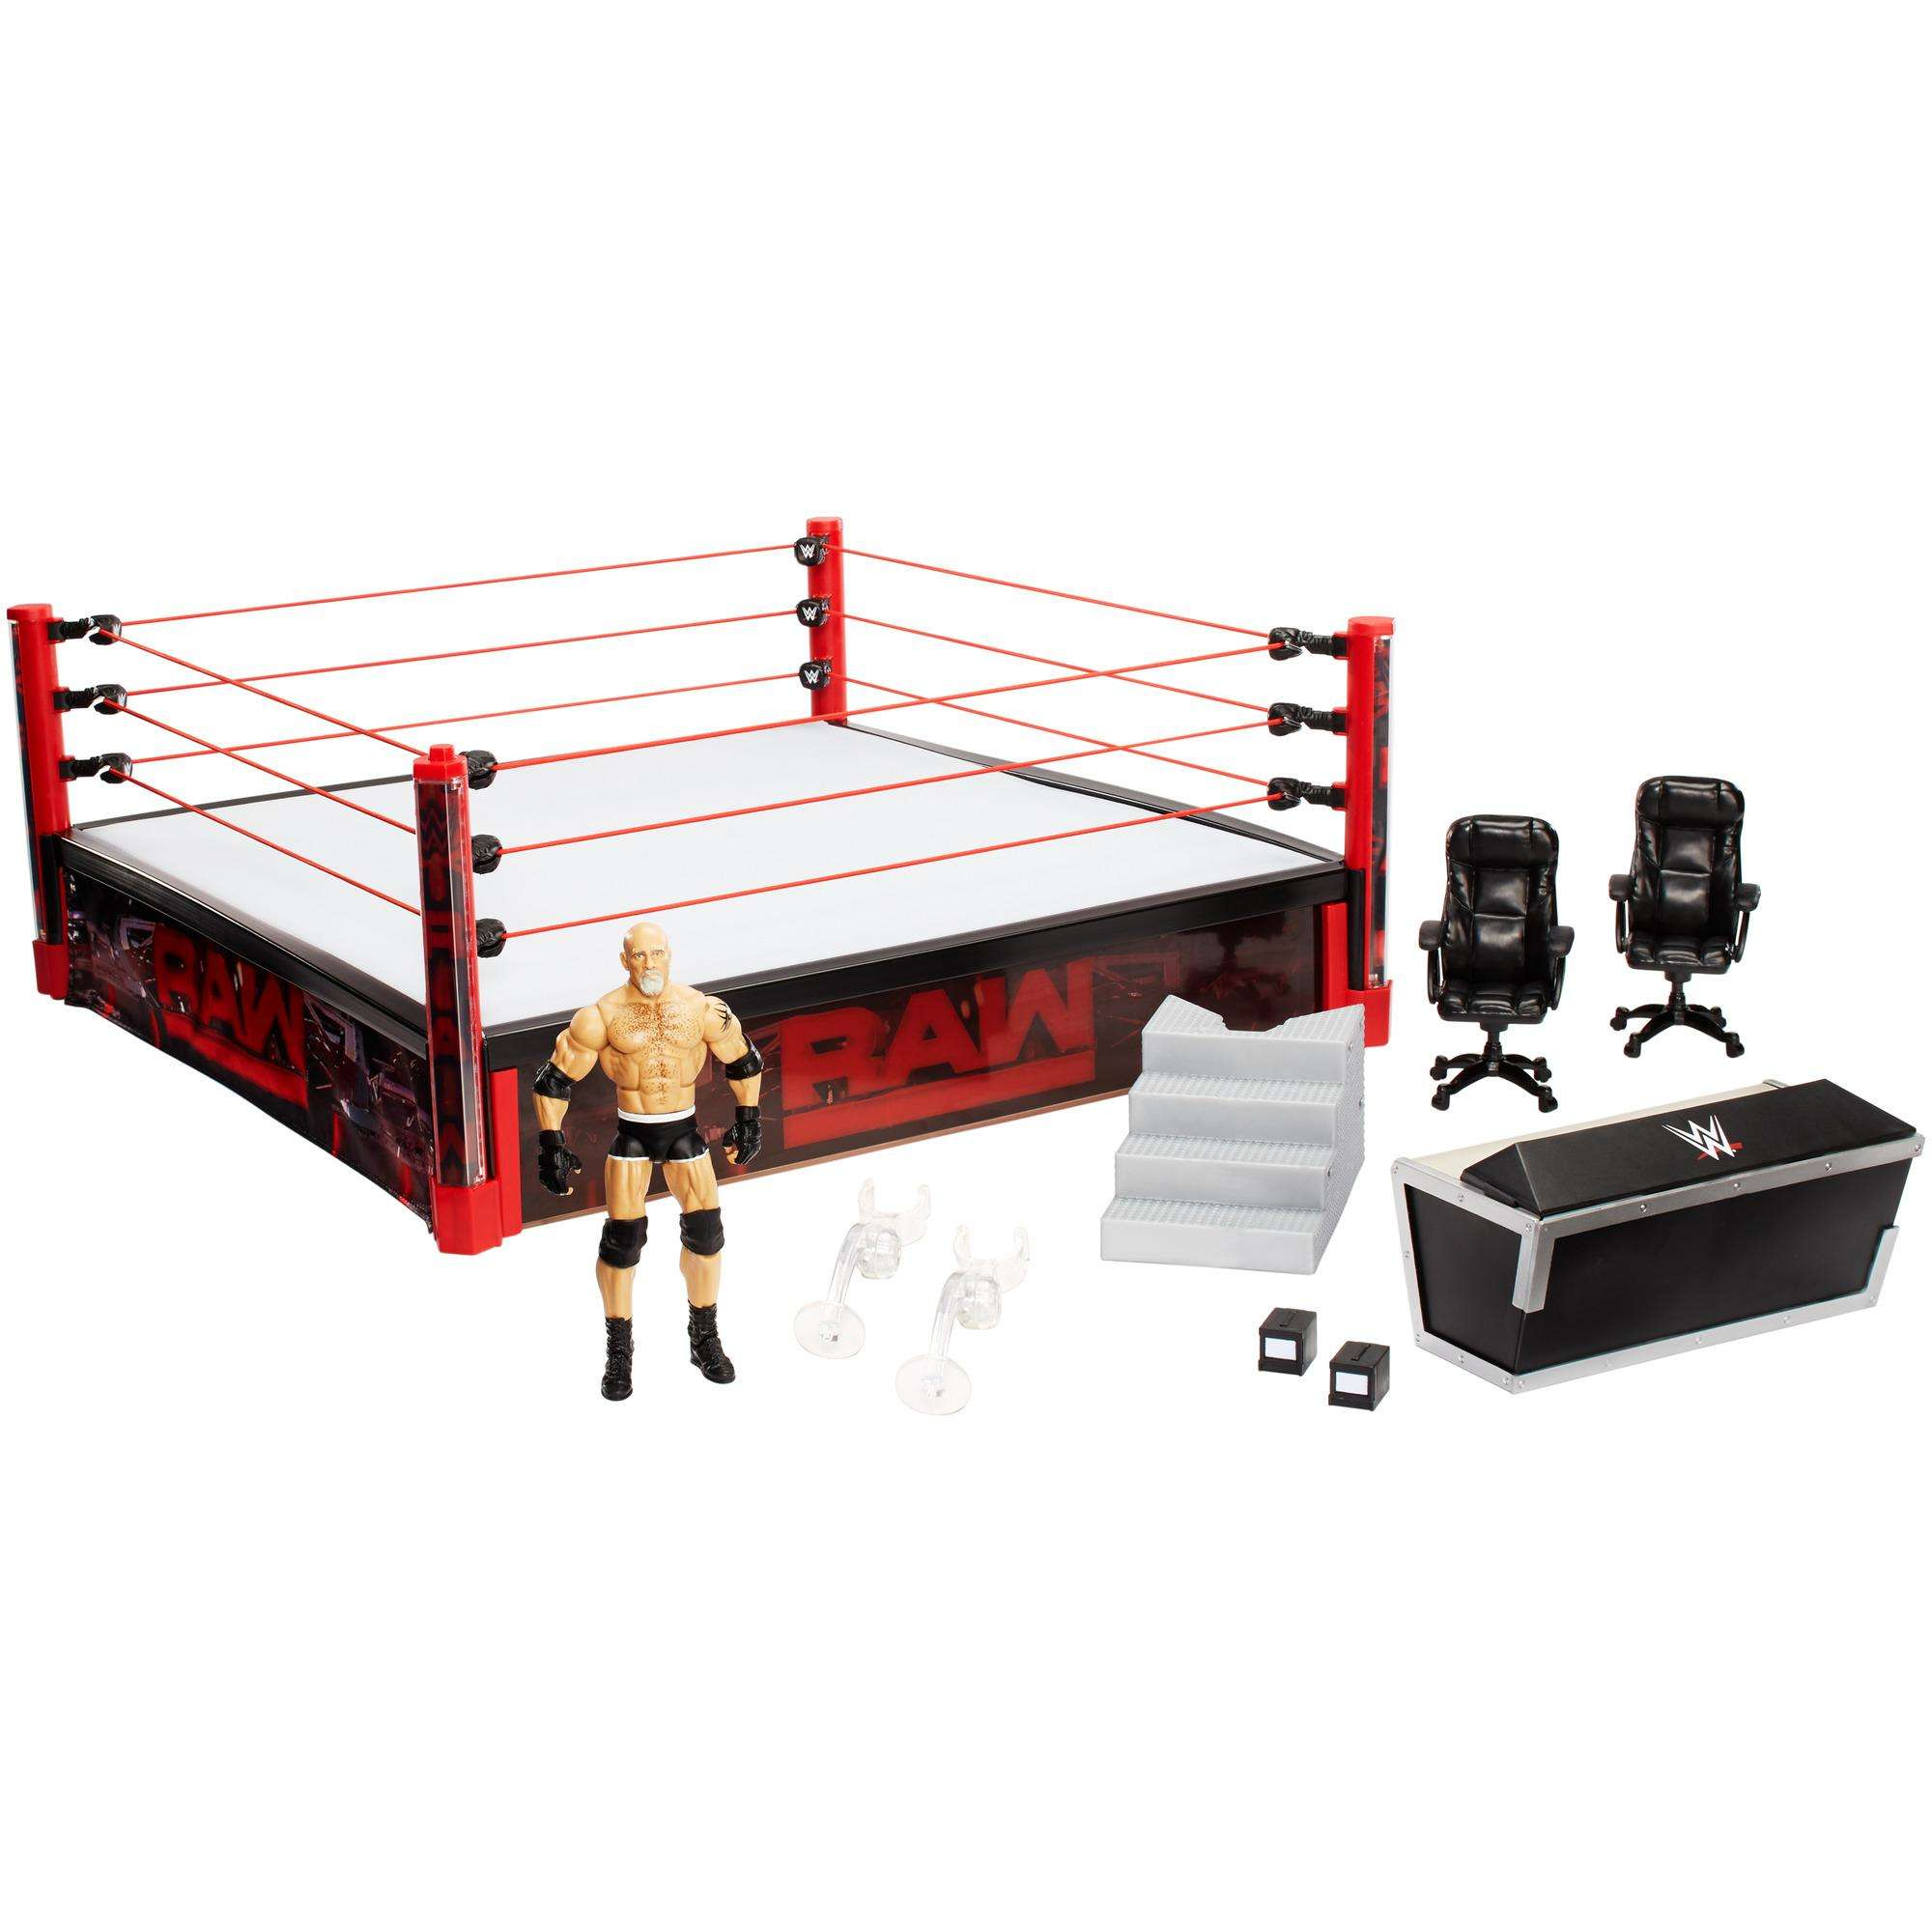 WWE RAW Main Event Ring by Mattel